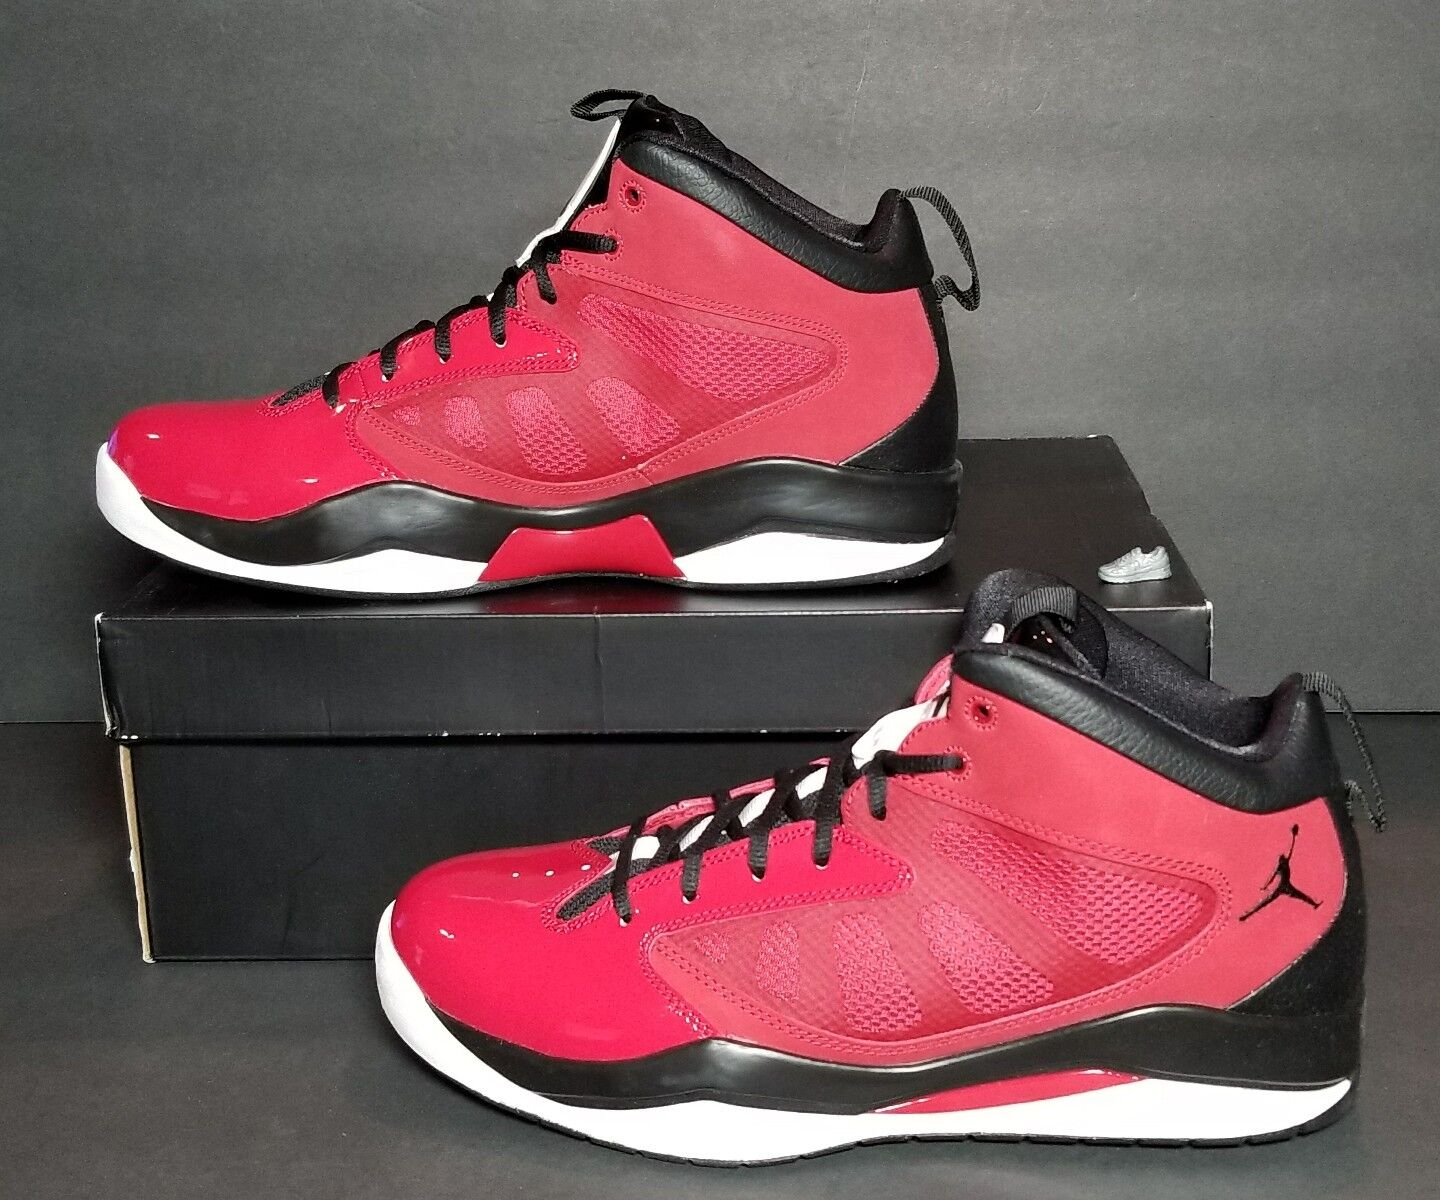 NIKE JORDAN FLIGHT TEAM 11 MEN'S MULTIPLE SIZES NEW IN BOX  GYM RED 428777 601 Wild casual shoes